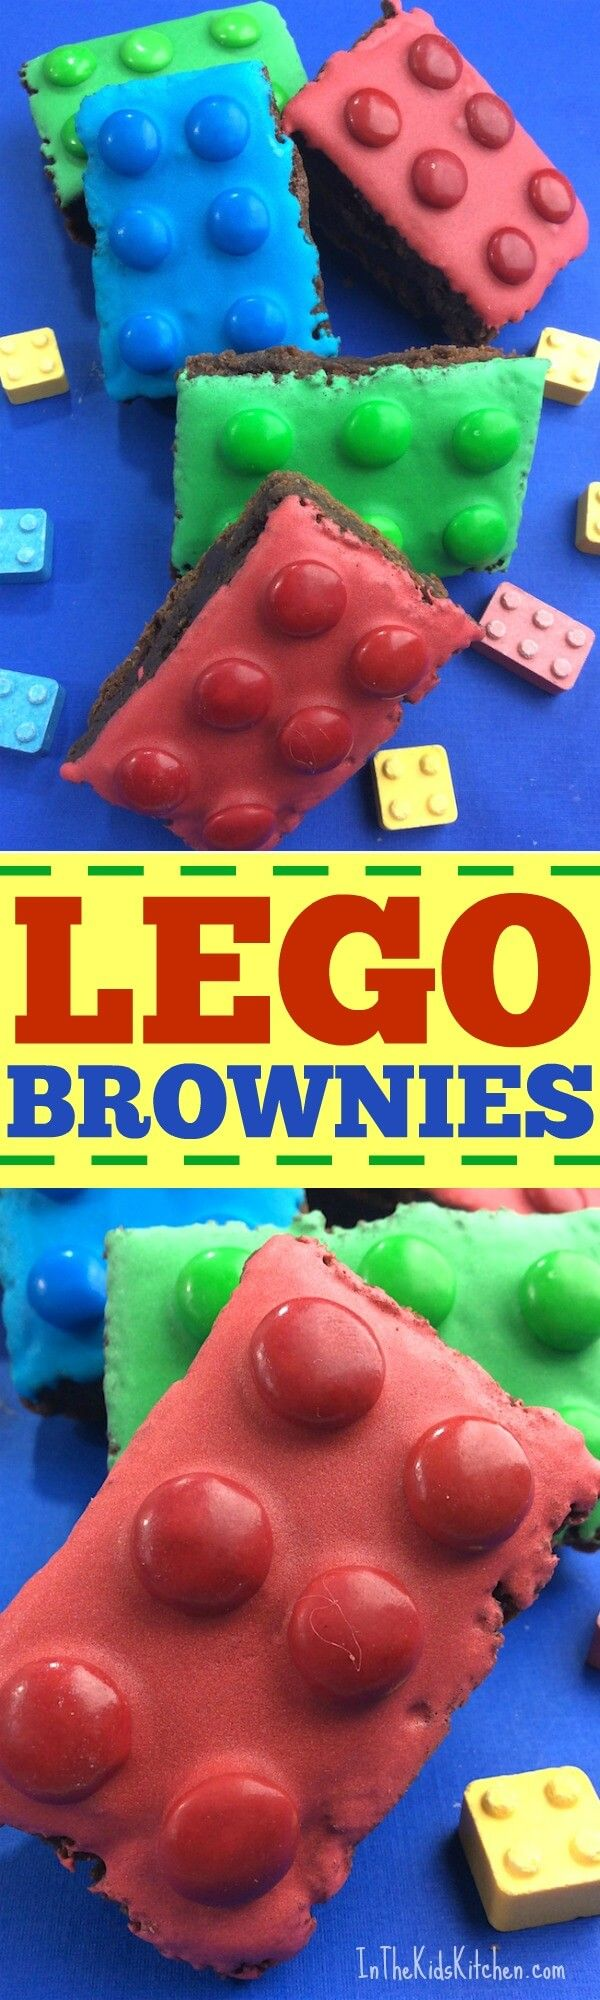 Perfect for a kids birthday party, bake sales, or to celebrate the new LEGO movies -- these colorful LEGO Brownies are the coolest dessert ever!